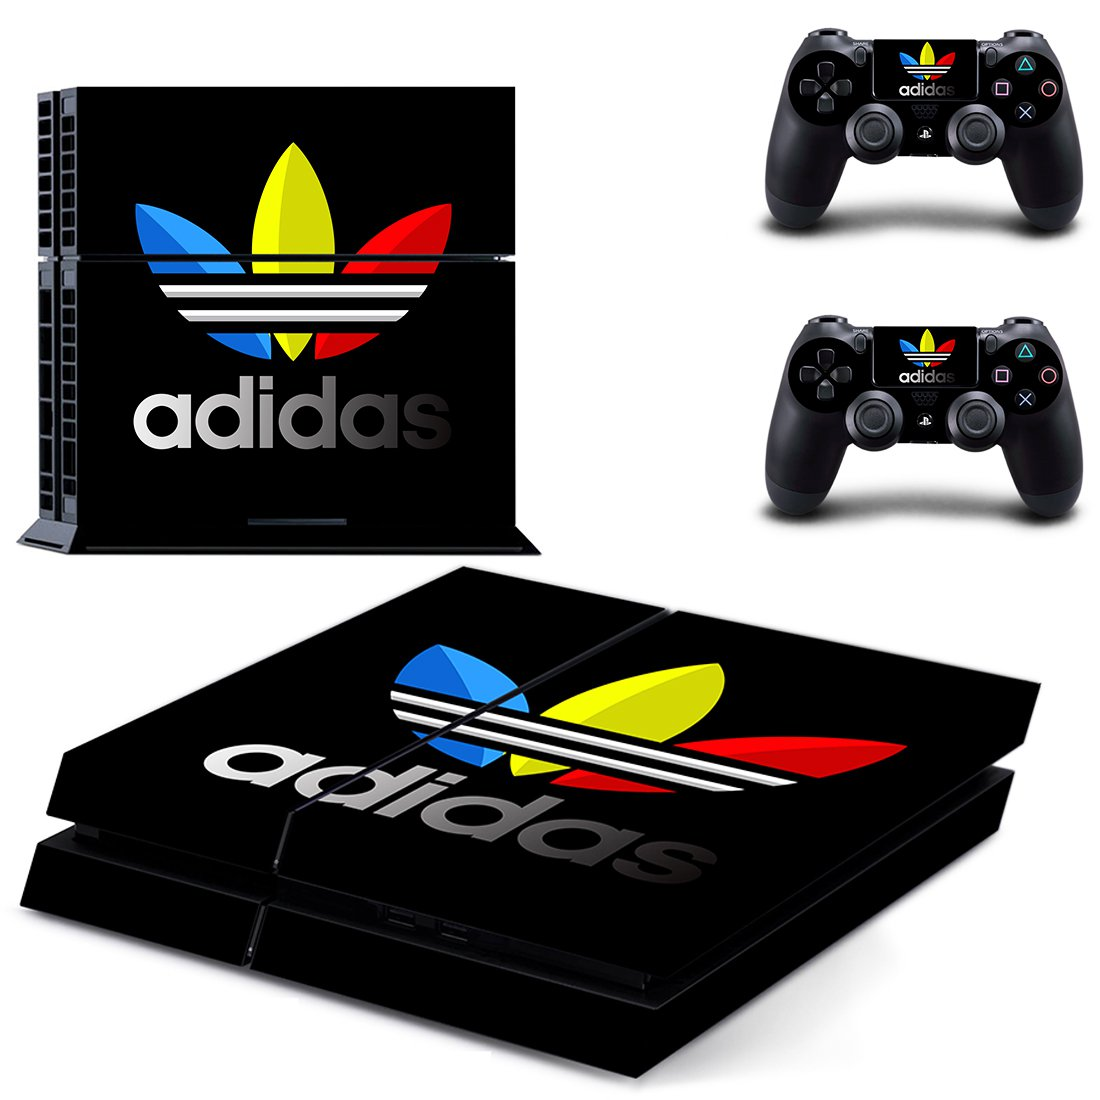 Adidas PS4 Skin Sticker Decals PS4 Console And Controllers Protect Your PS4